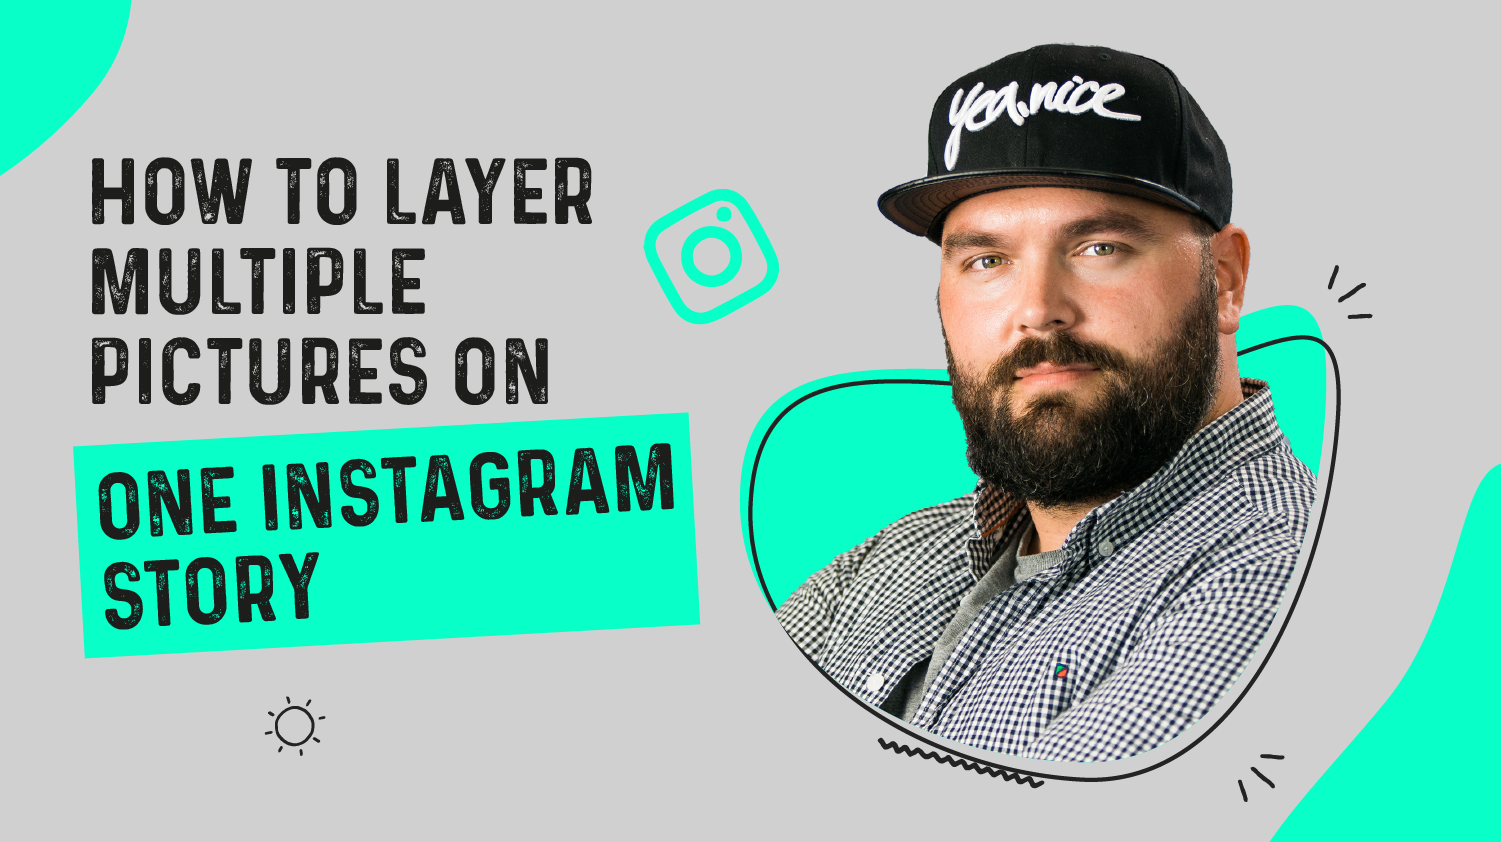 How to Layer Multiple Pictures on One Instagram Story